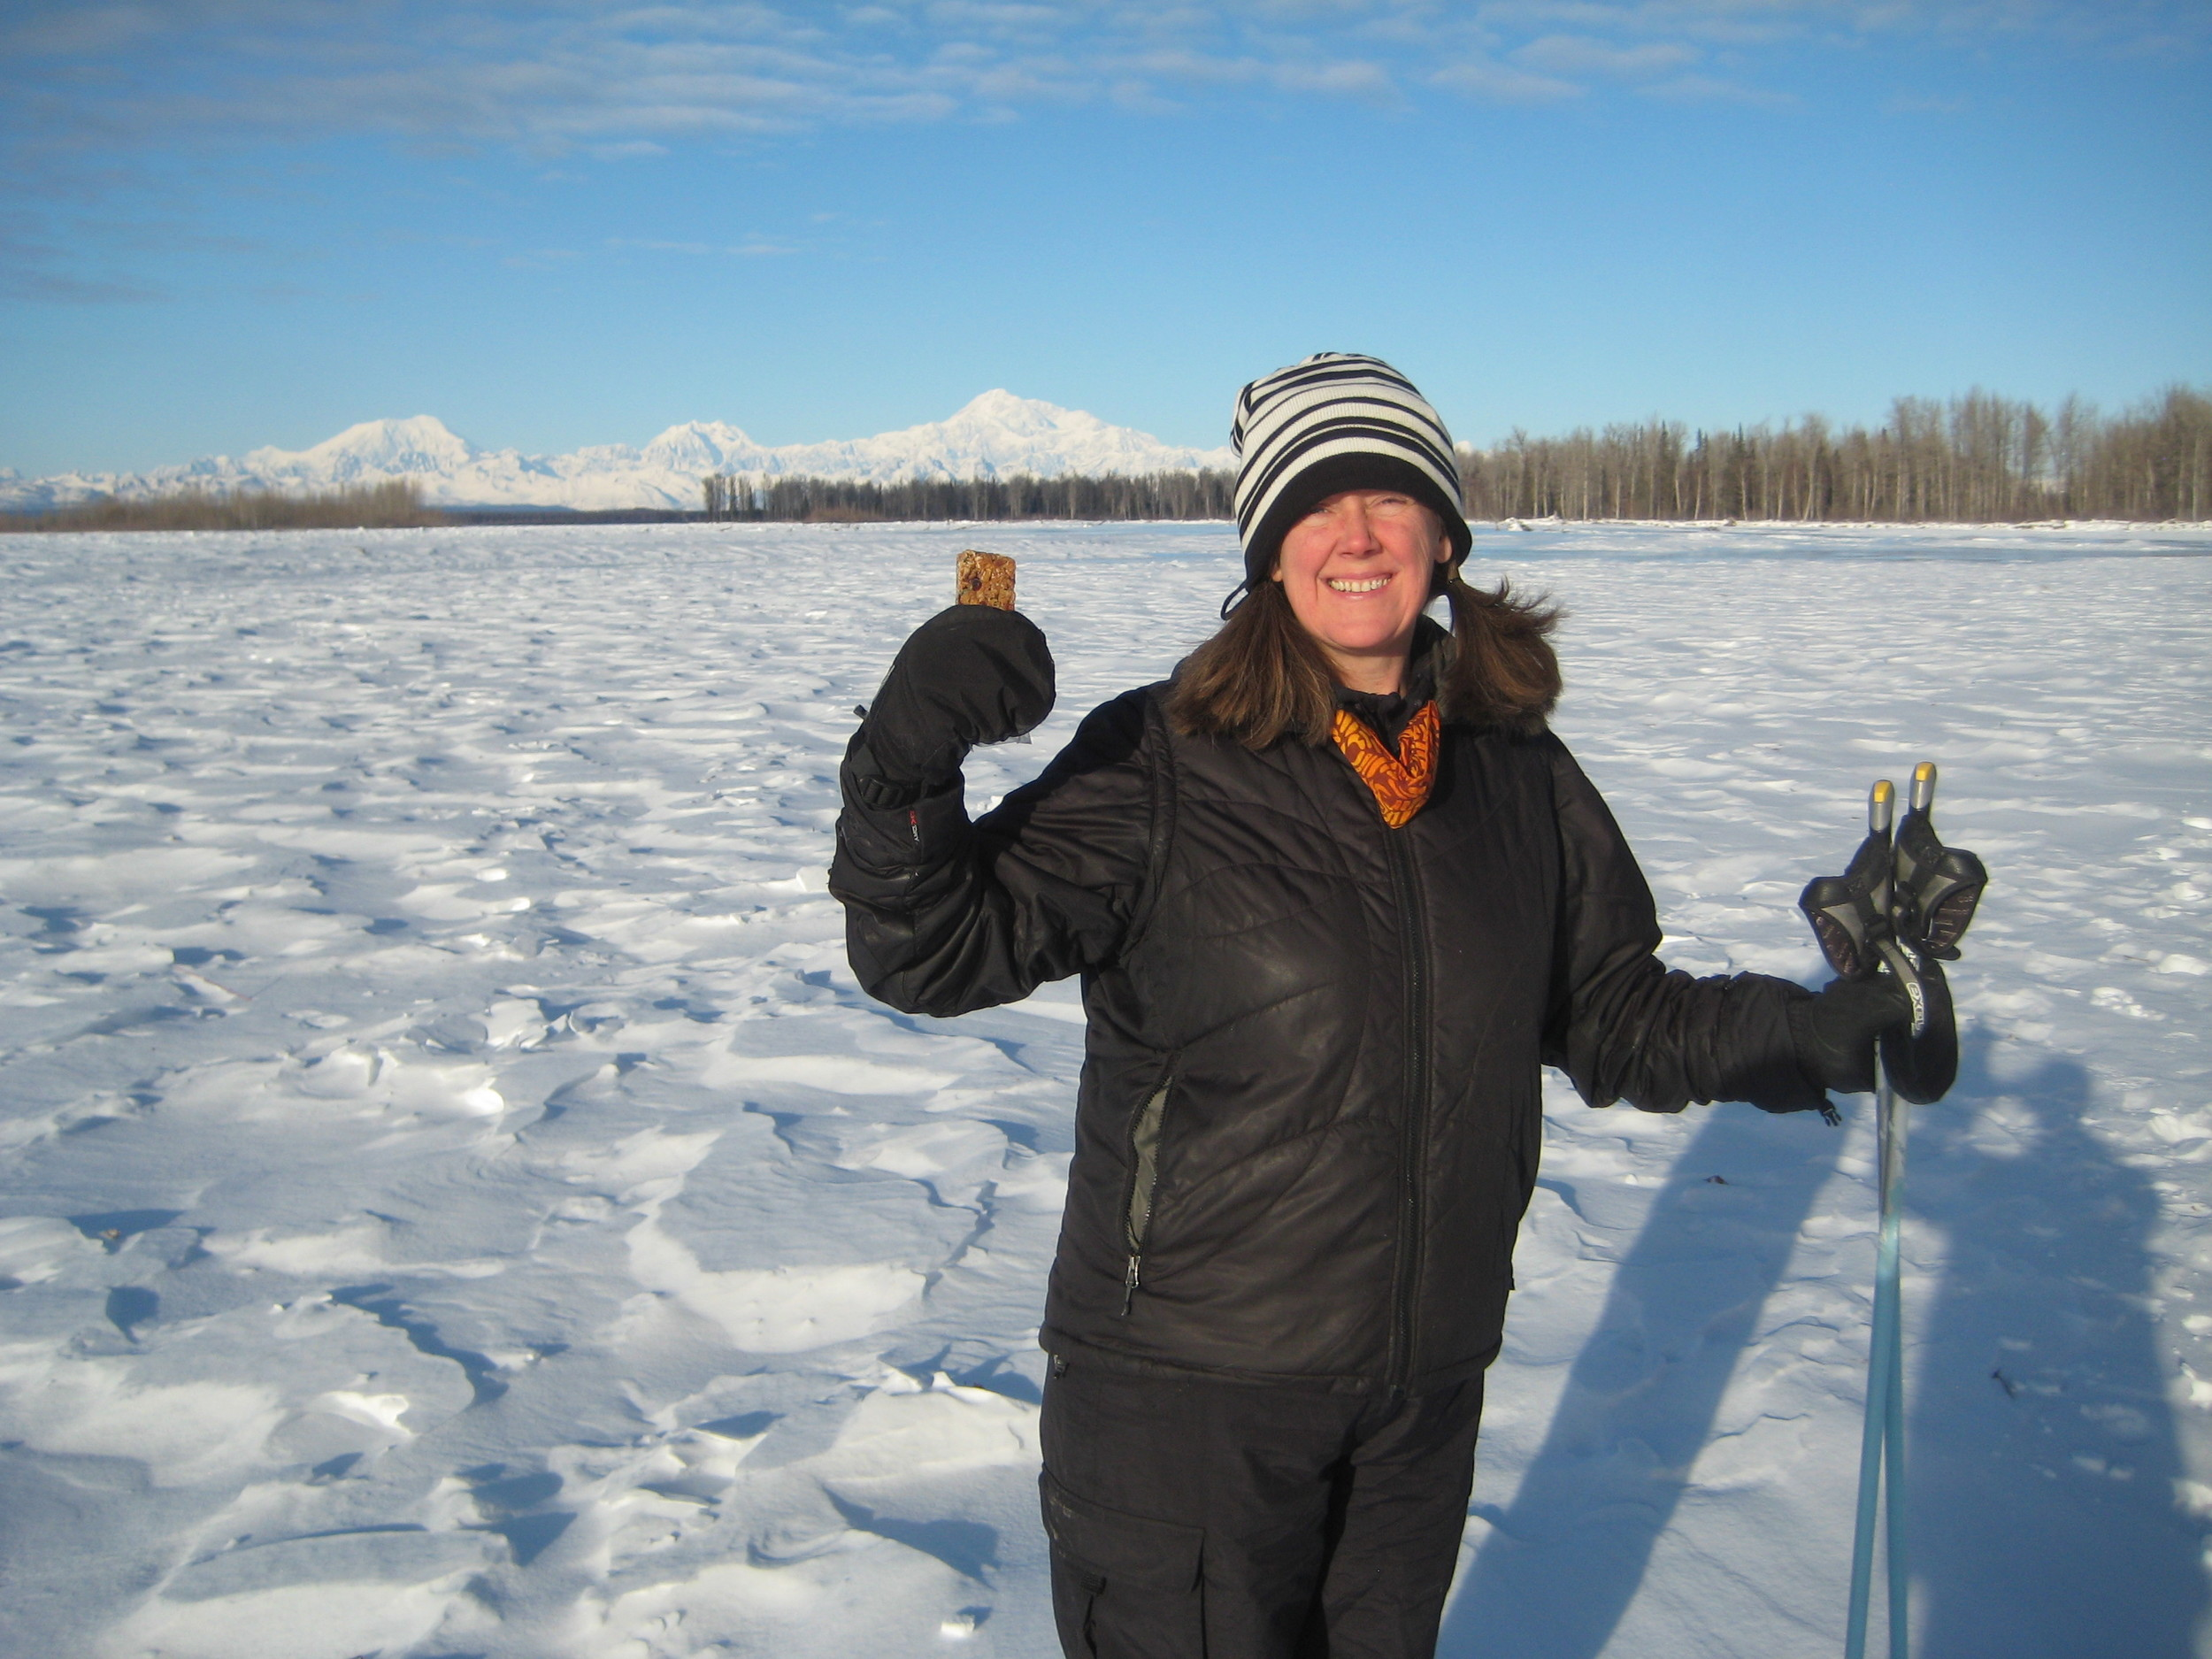 Beautiful Randi from Talkeetna, Alaska sent these photos....just another day cross-country skiing on a frozen river with the majestic Alaska Range in the background!